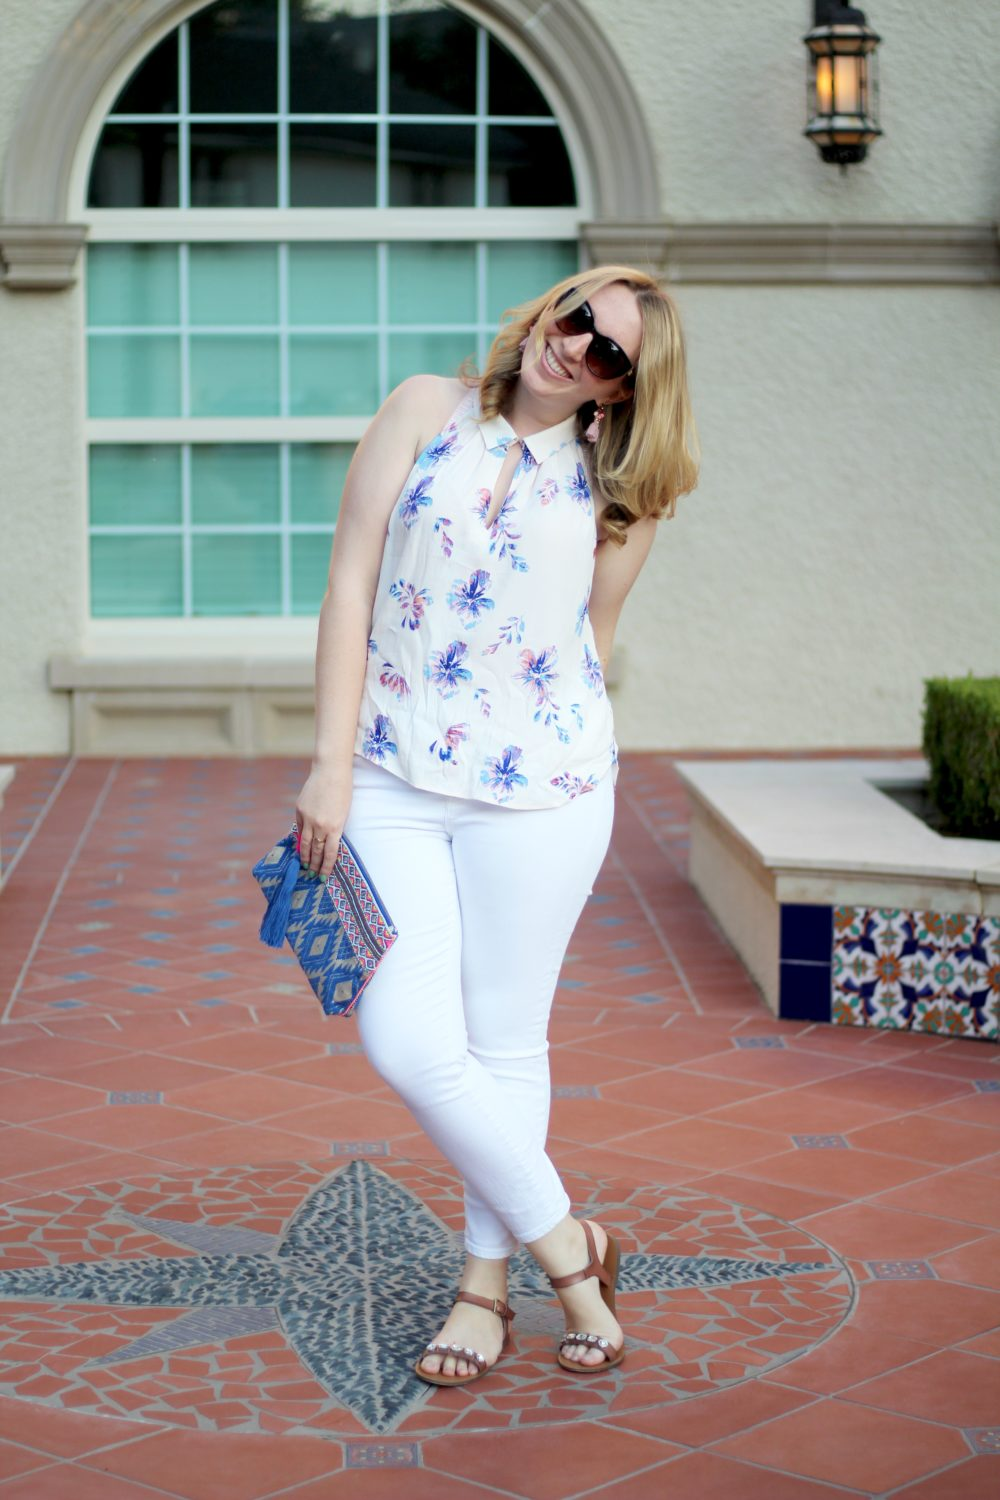 Floral Racerback Blouse, Rent the Runway top, ASTR shirt, sleeveless, j.crew toothpick white denim jeans